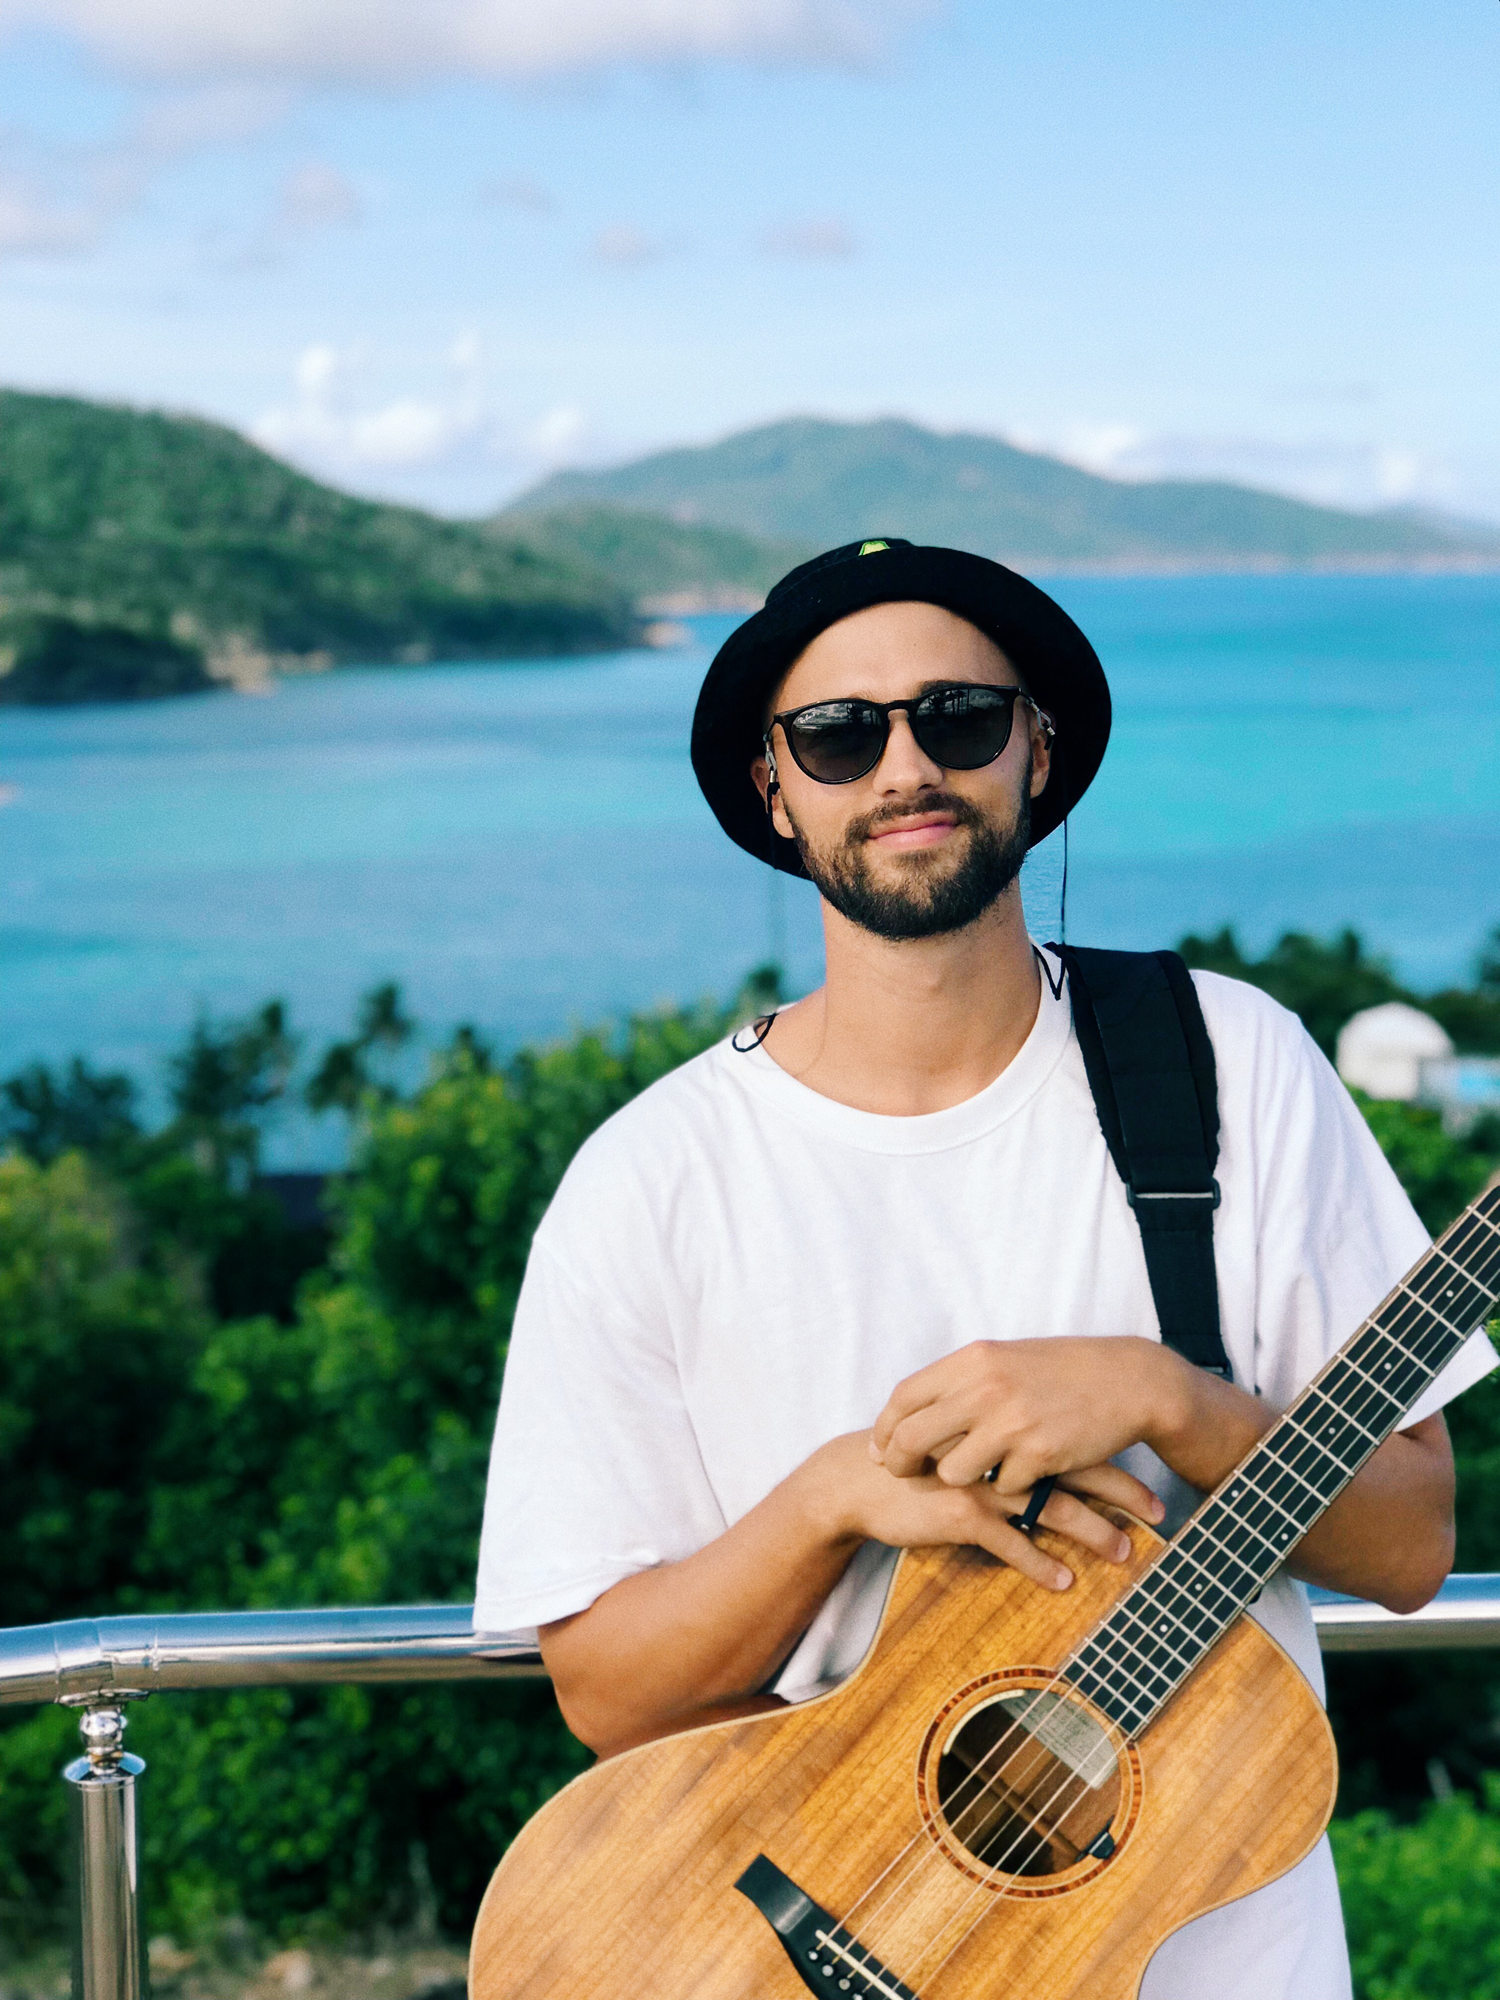 crotti-mark-crotti-hamilton-island-one-tree-hill-acoustic-live-music-march-2019.png